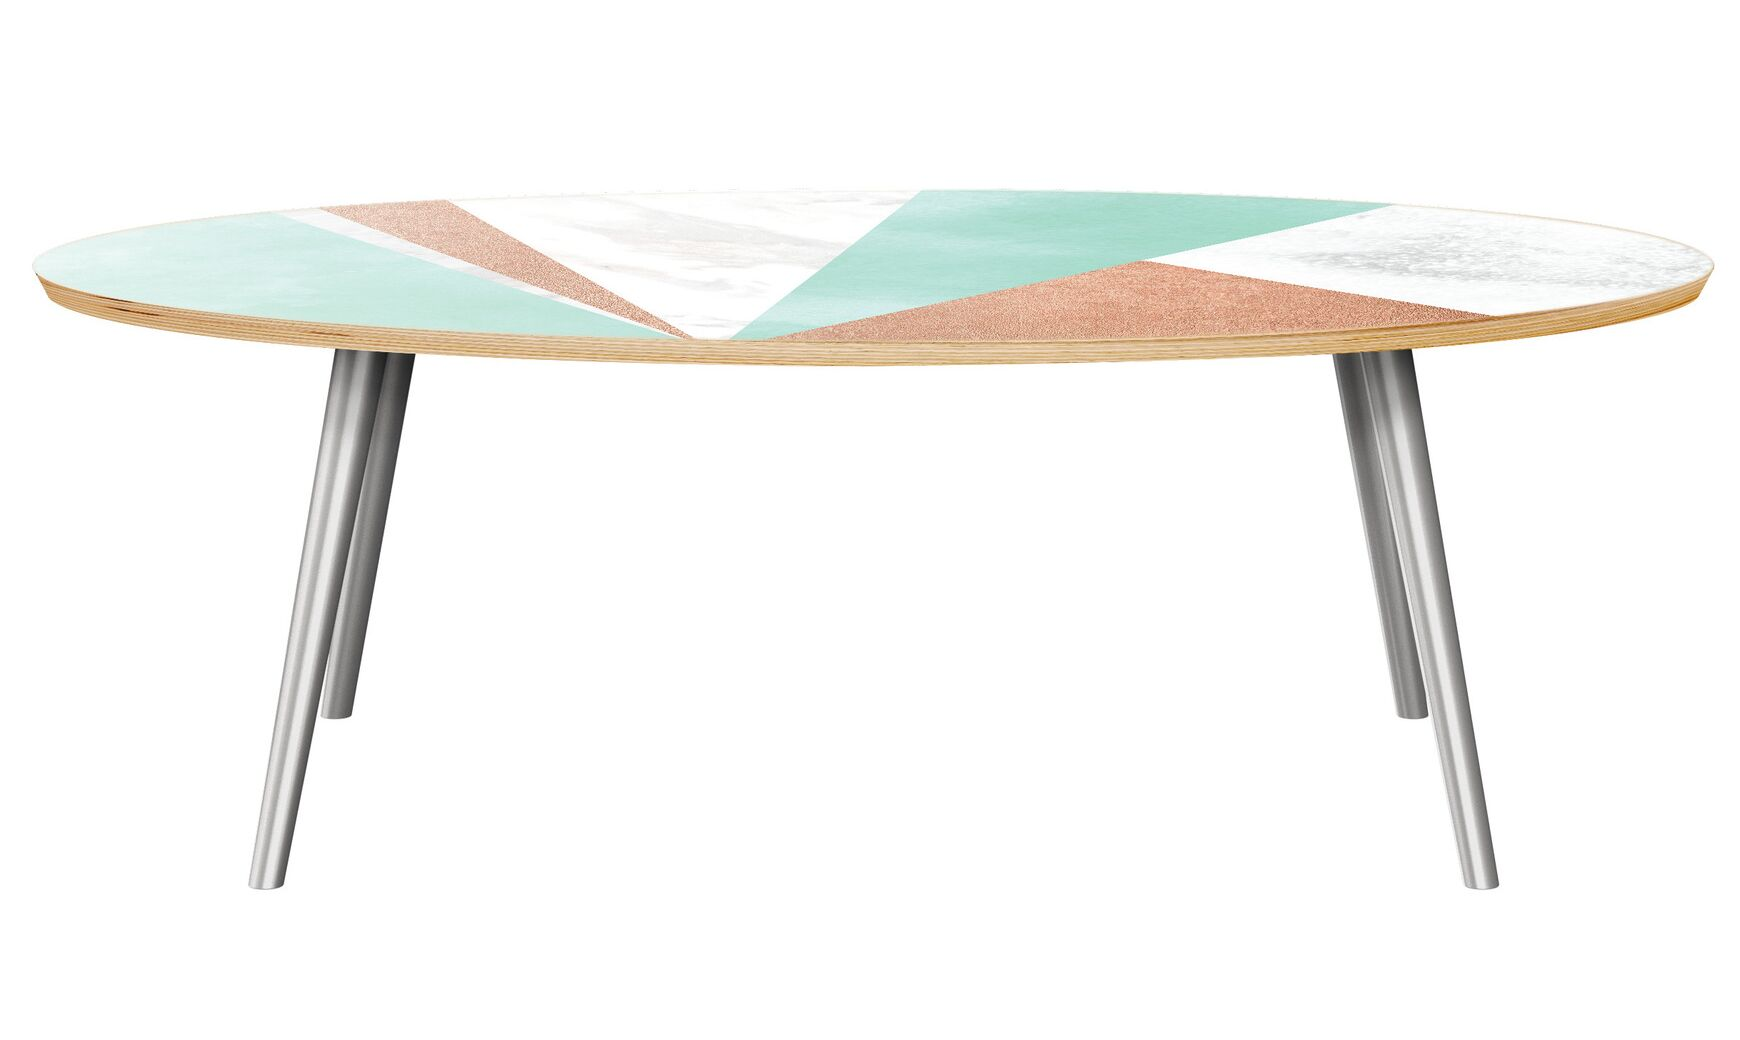 Guthridge Coffee Table Table Base Color: Chrome, Table Top Color: Natural/Green